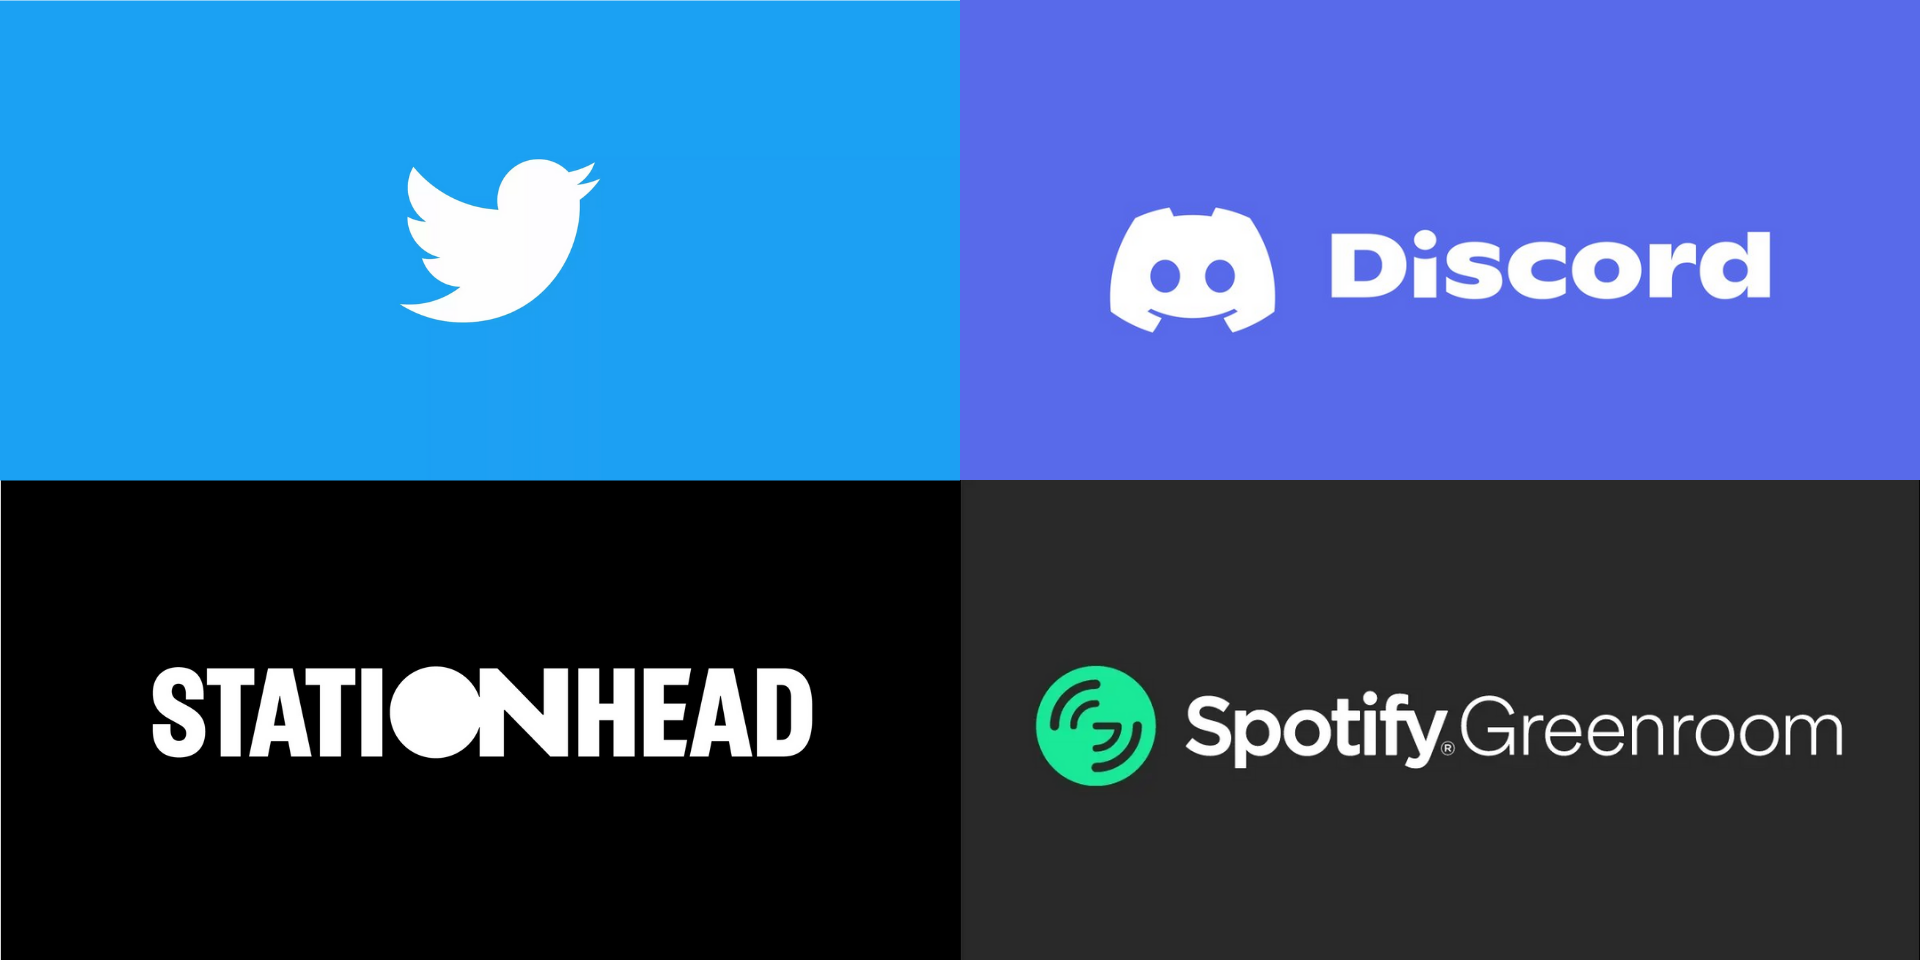 7 social audio room apps to check out - Stationhead, Spotify Greenroom, Discord Stages, Twitter Spaces, and more